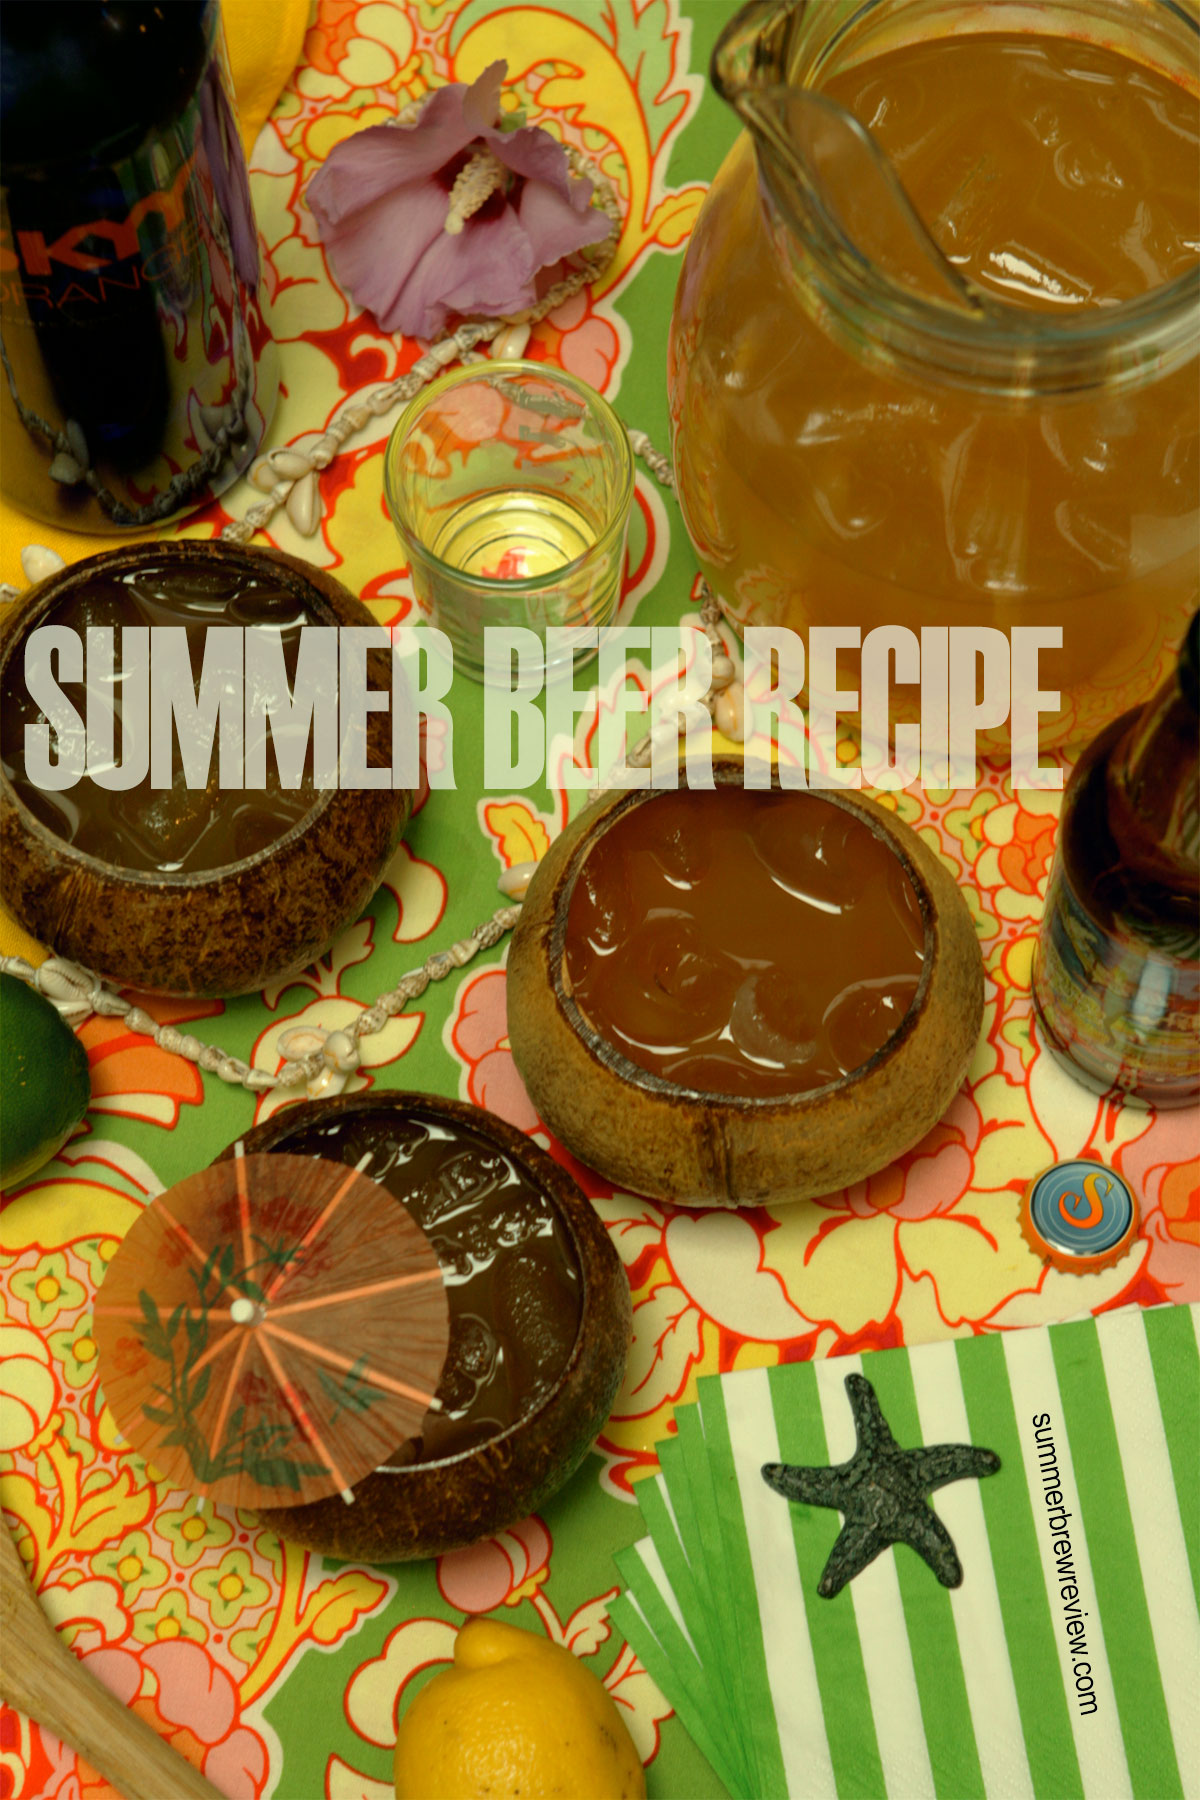 Summer beer recipe with lemonade, vodka and beer.